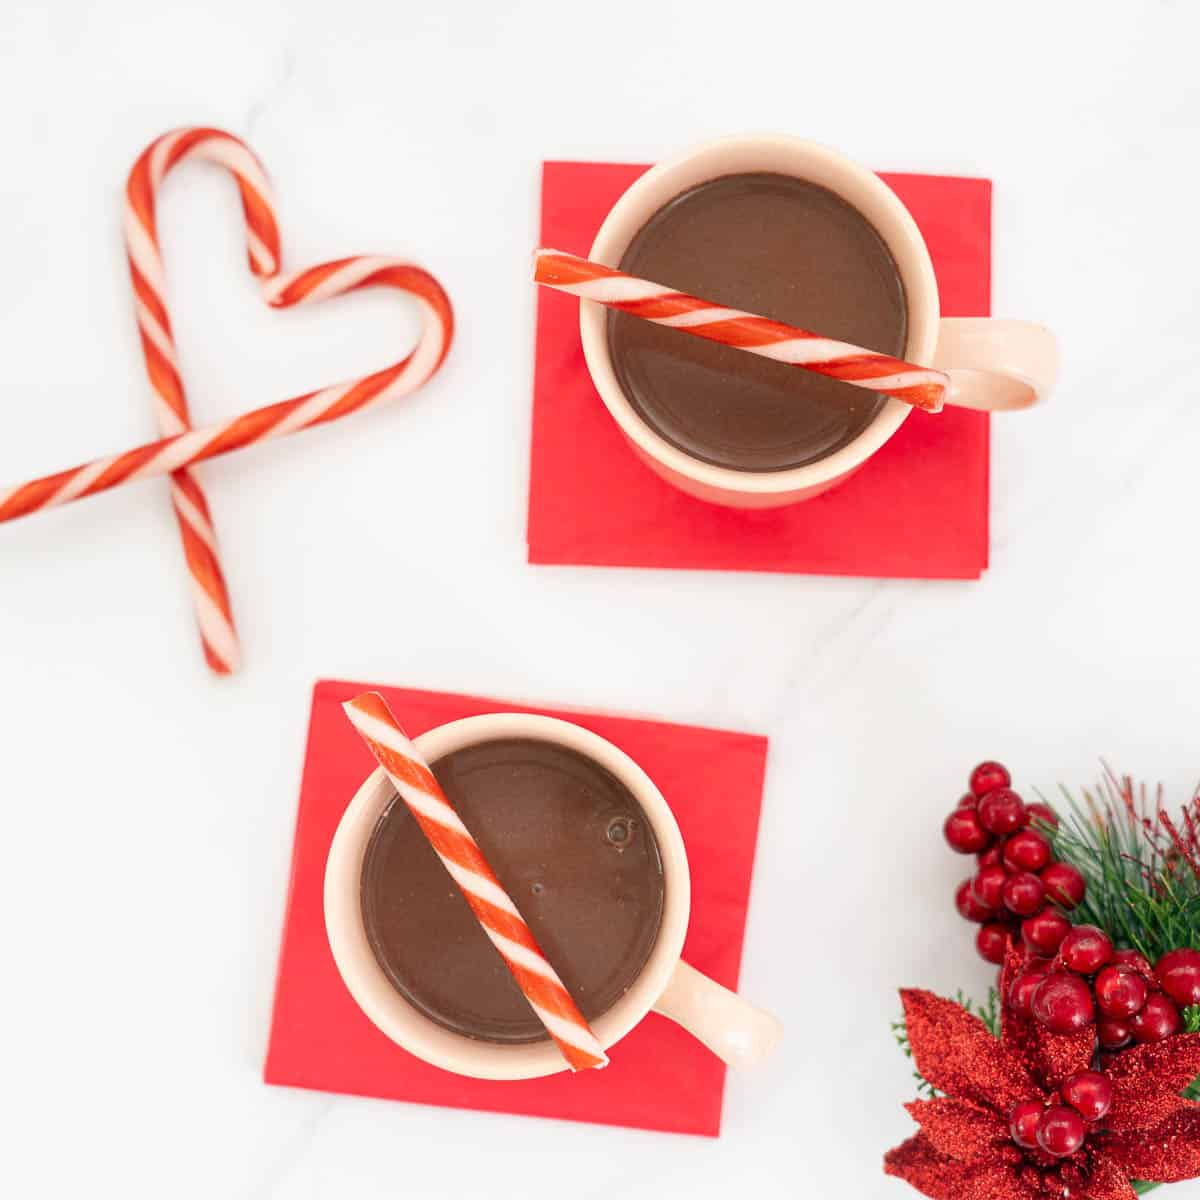 Top down view of 2 mugs of  hot chocolate on red napkins, decorated with candy canes.